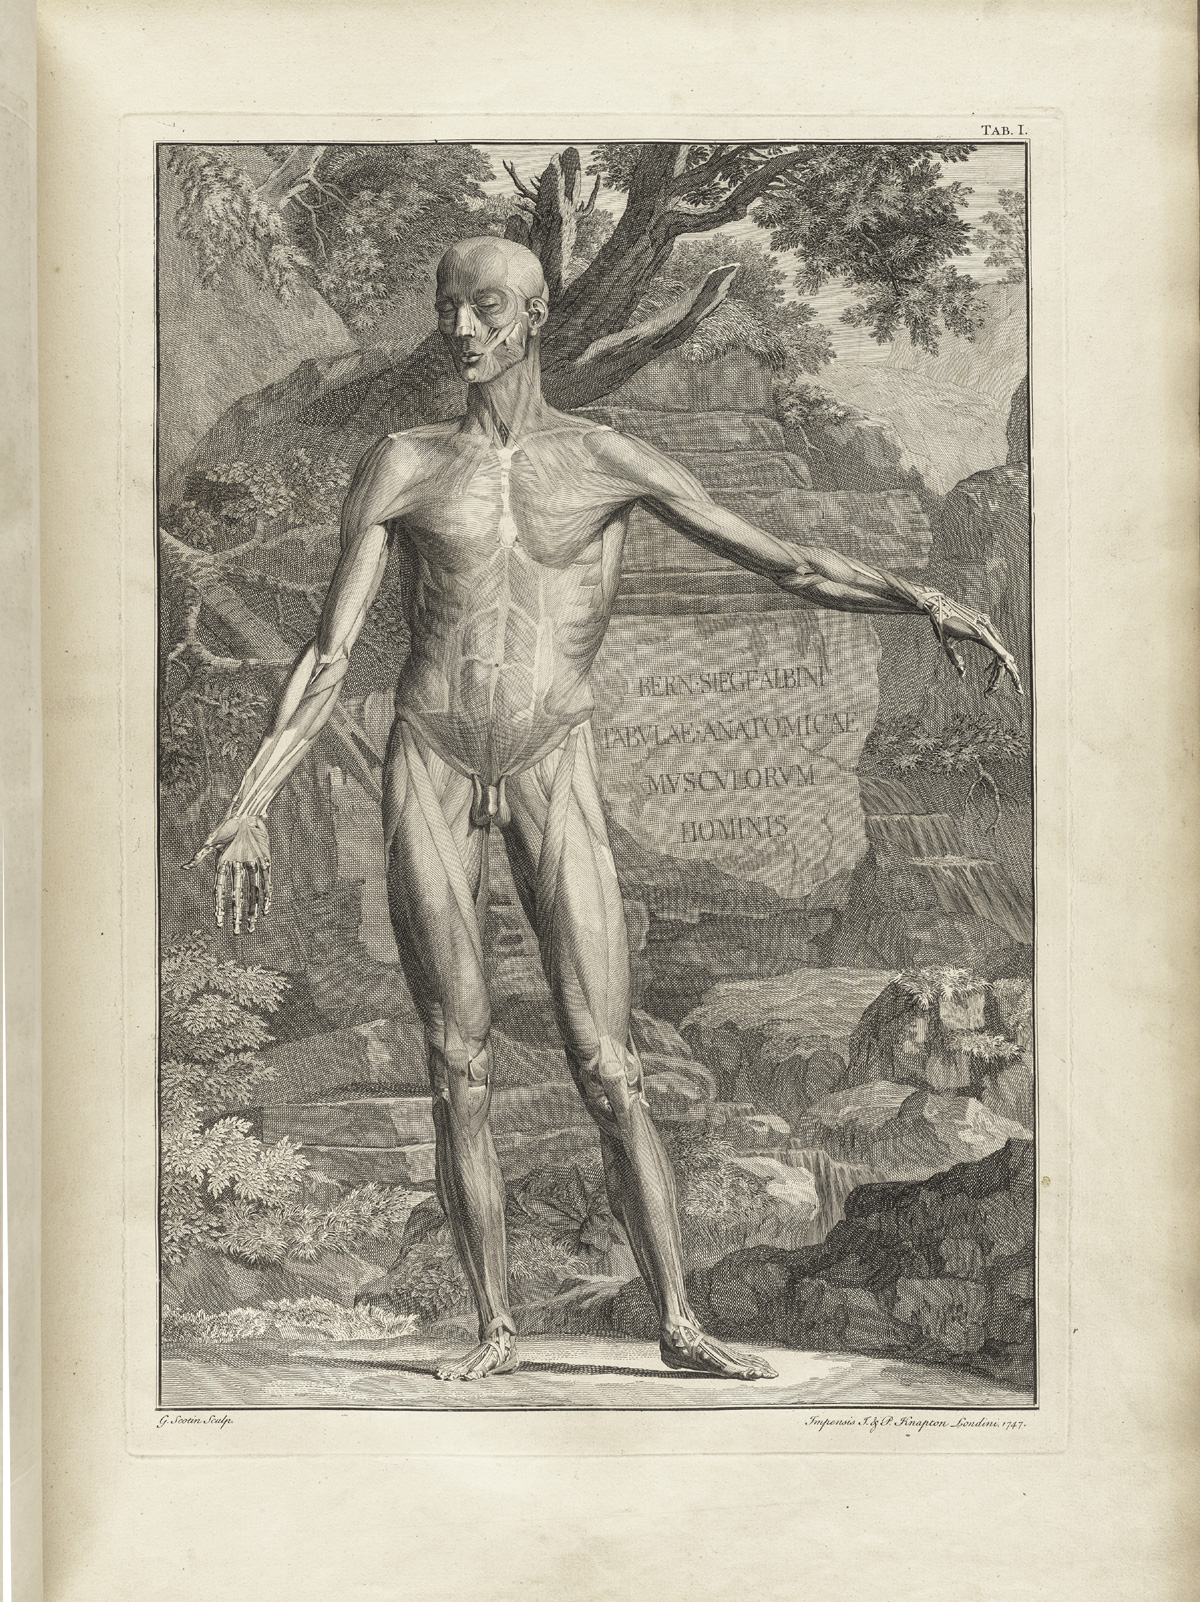 Historical Anatomies on the Web: Bernhard Seigfried Albinus Home